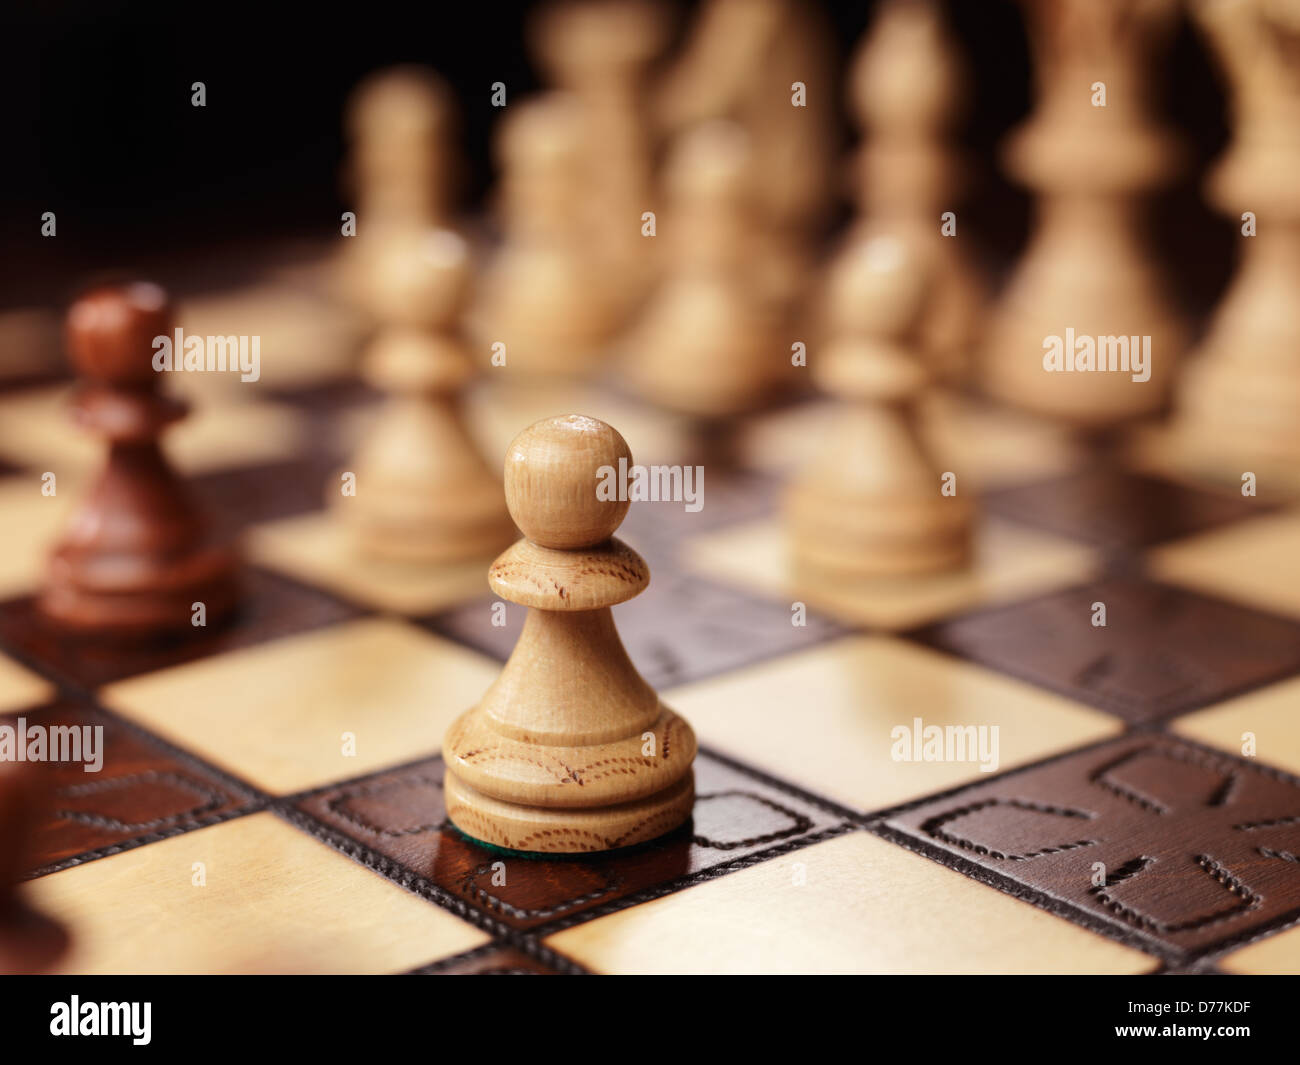 Pawn chess piece on a chessboard - Stock Photo